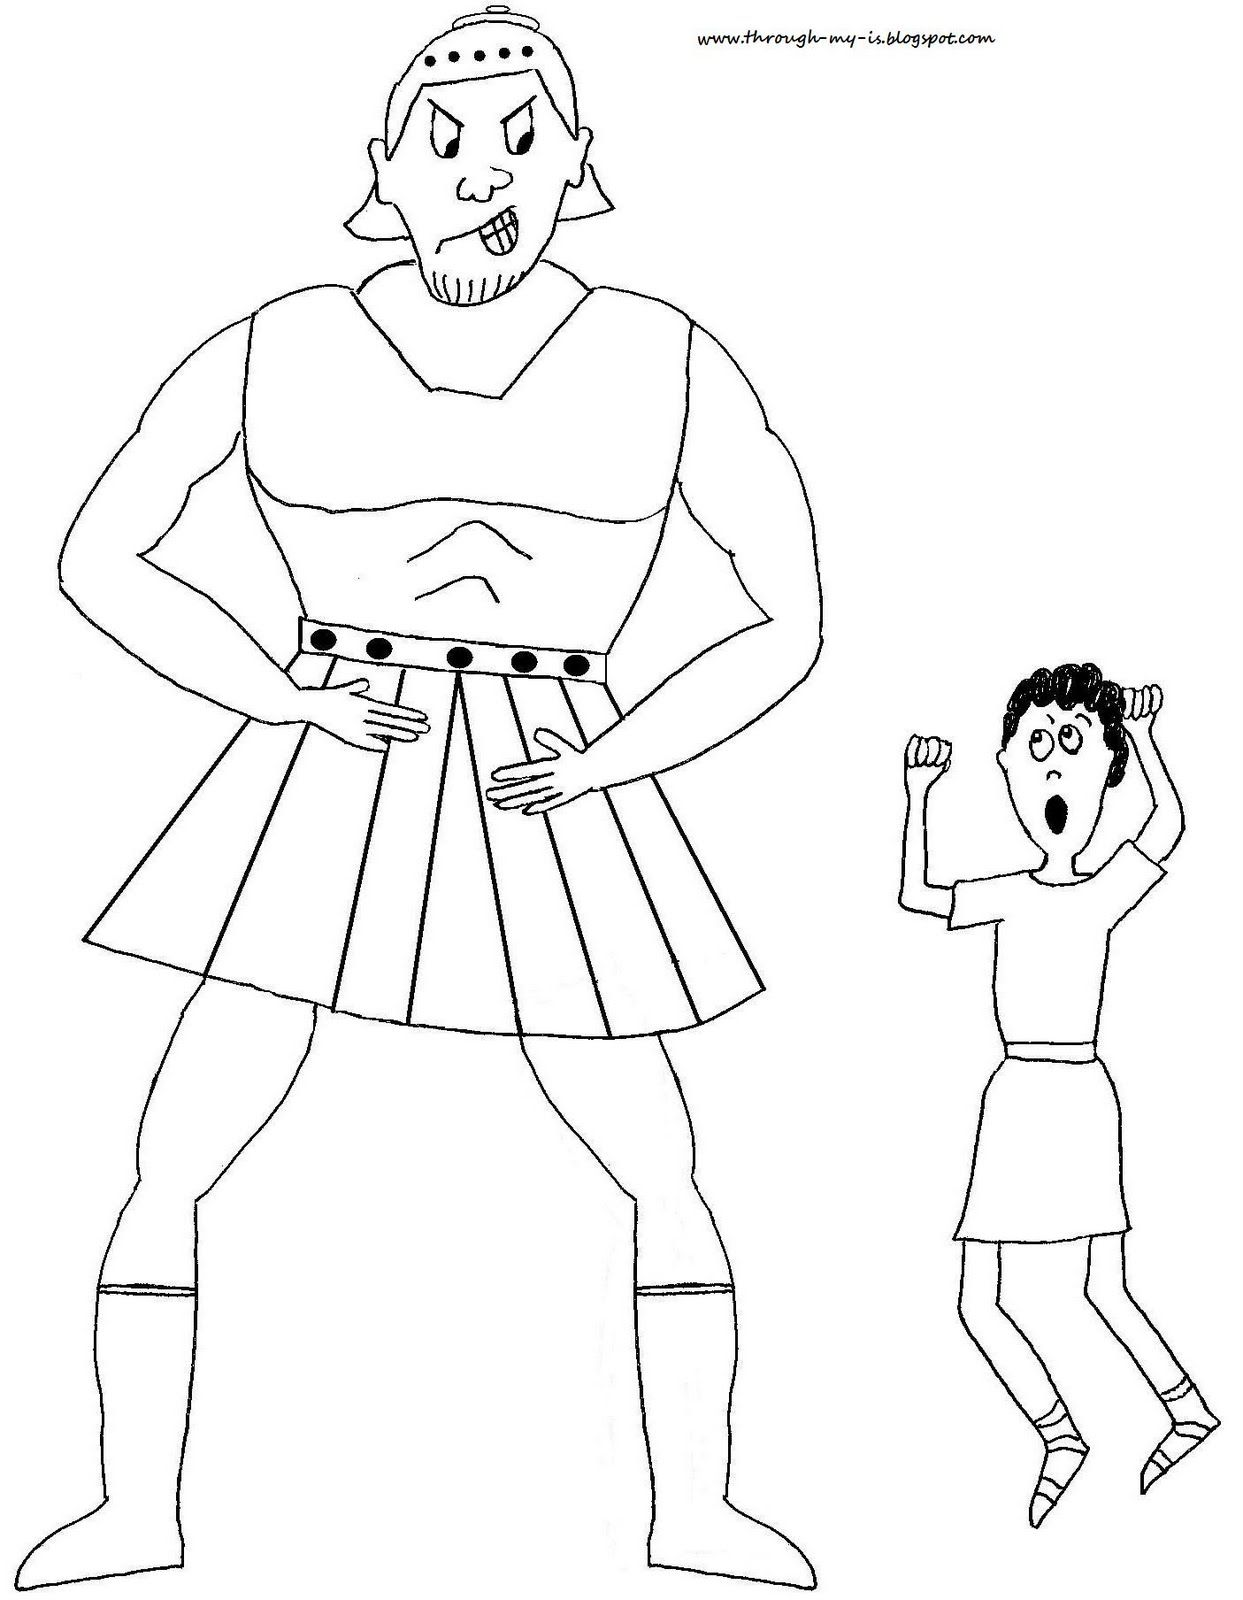 David and goliath jesus storybook bible advent crafts for David and goliath coloring pages for preschoolers